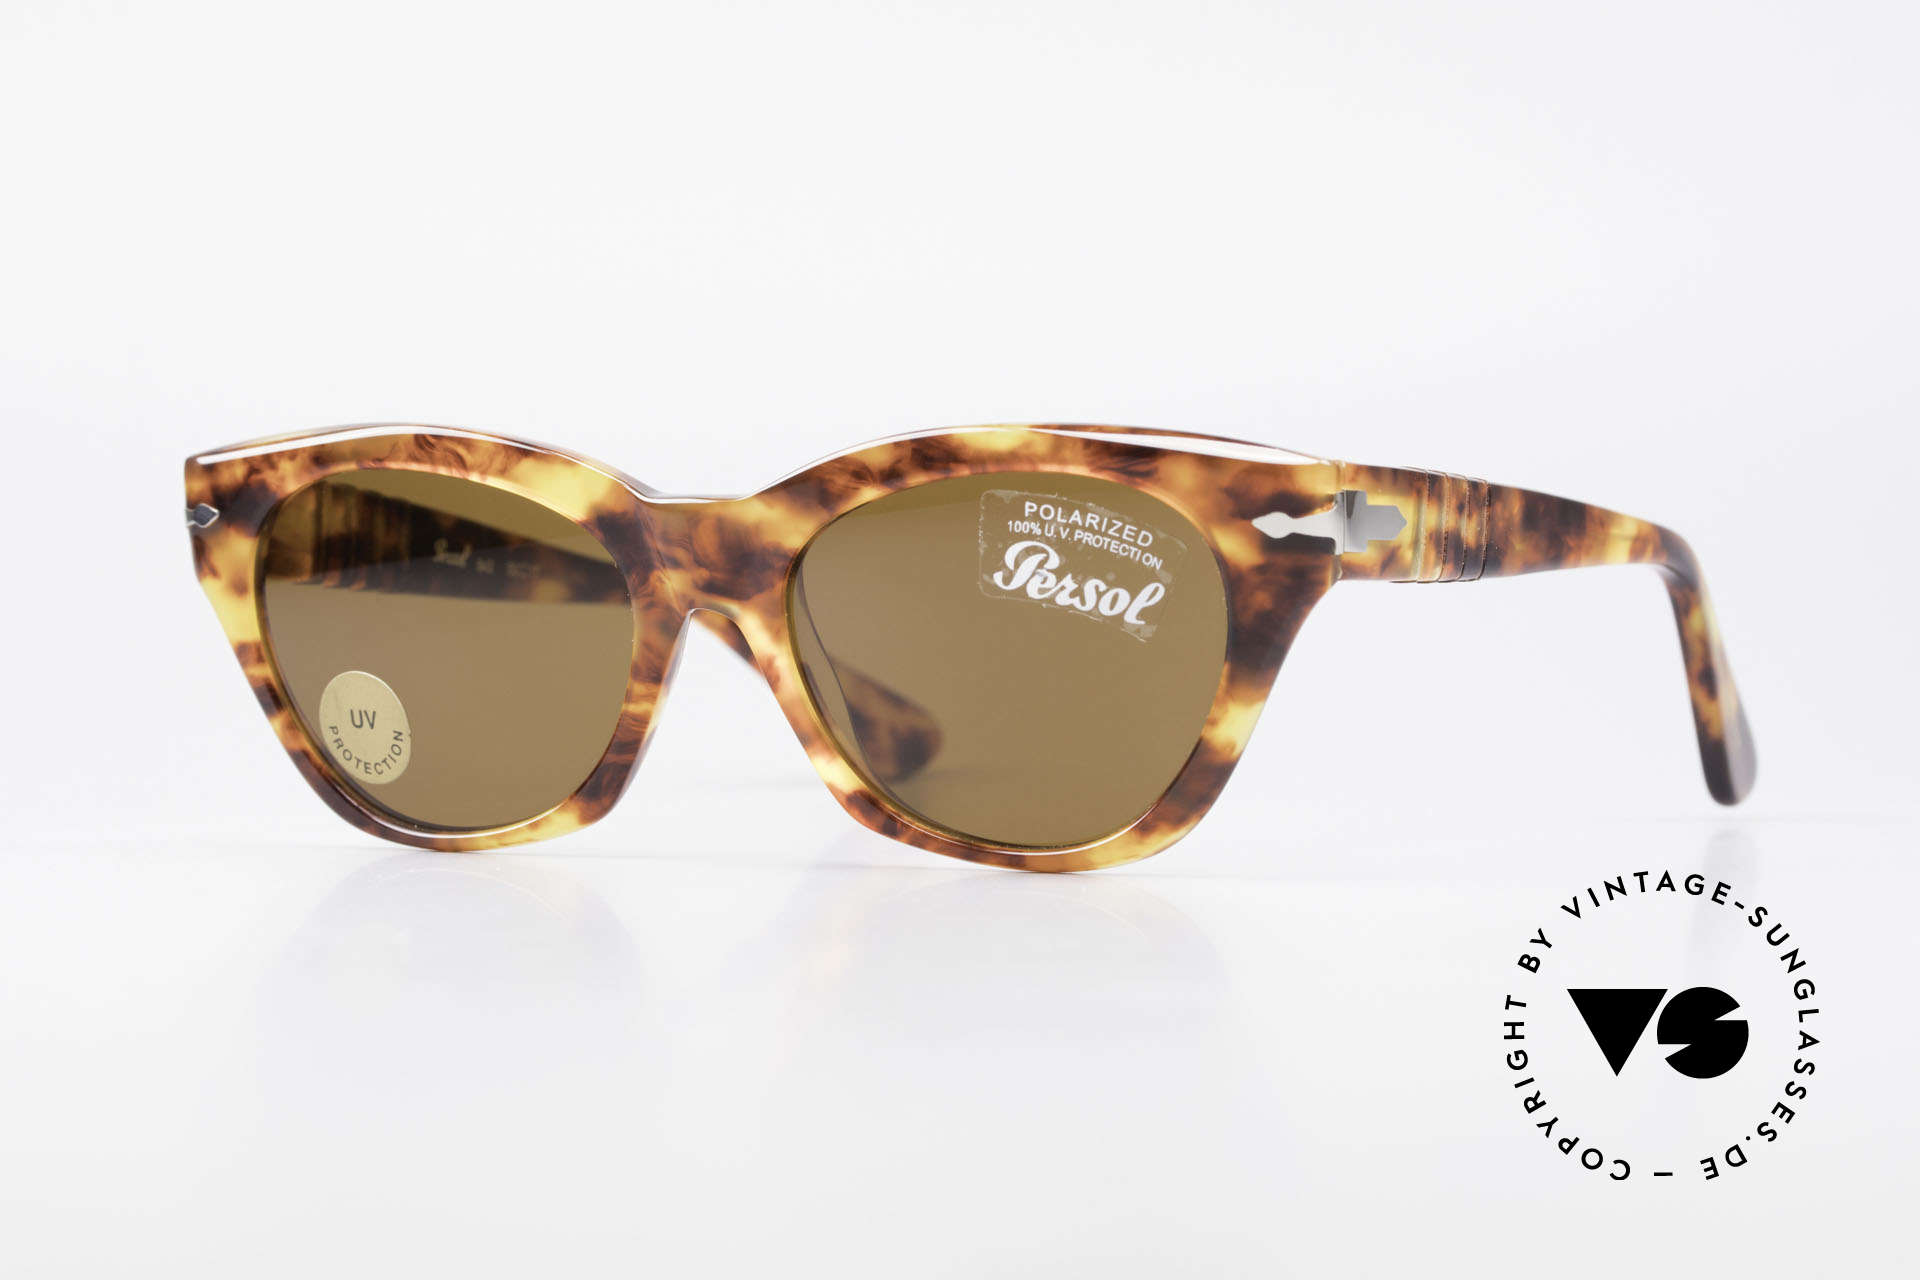 Persol 842 Ratti Classic Ladies Sunglasses, elegant vintage shades of the 90's by Persol, Made for Women